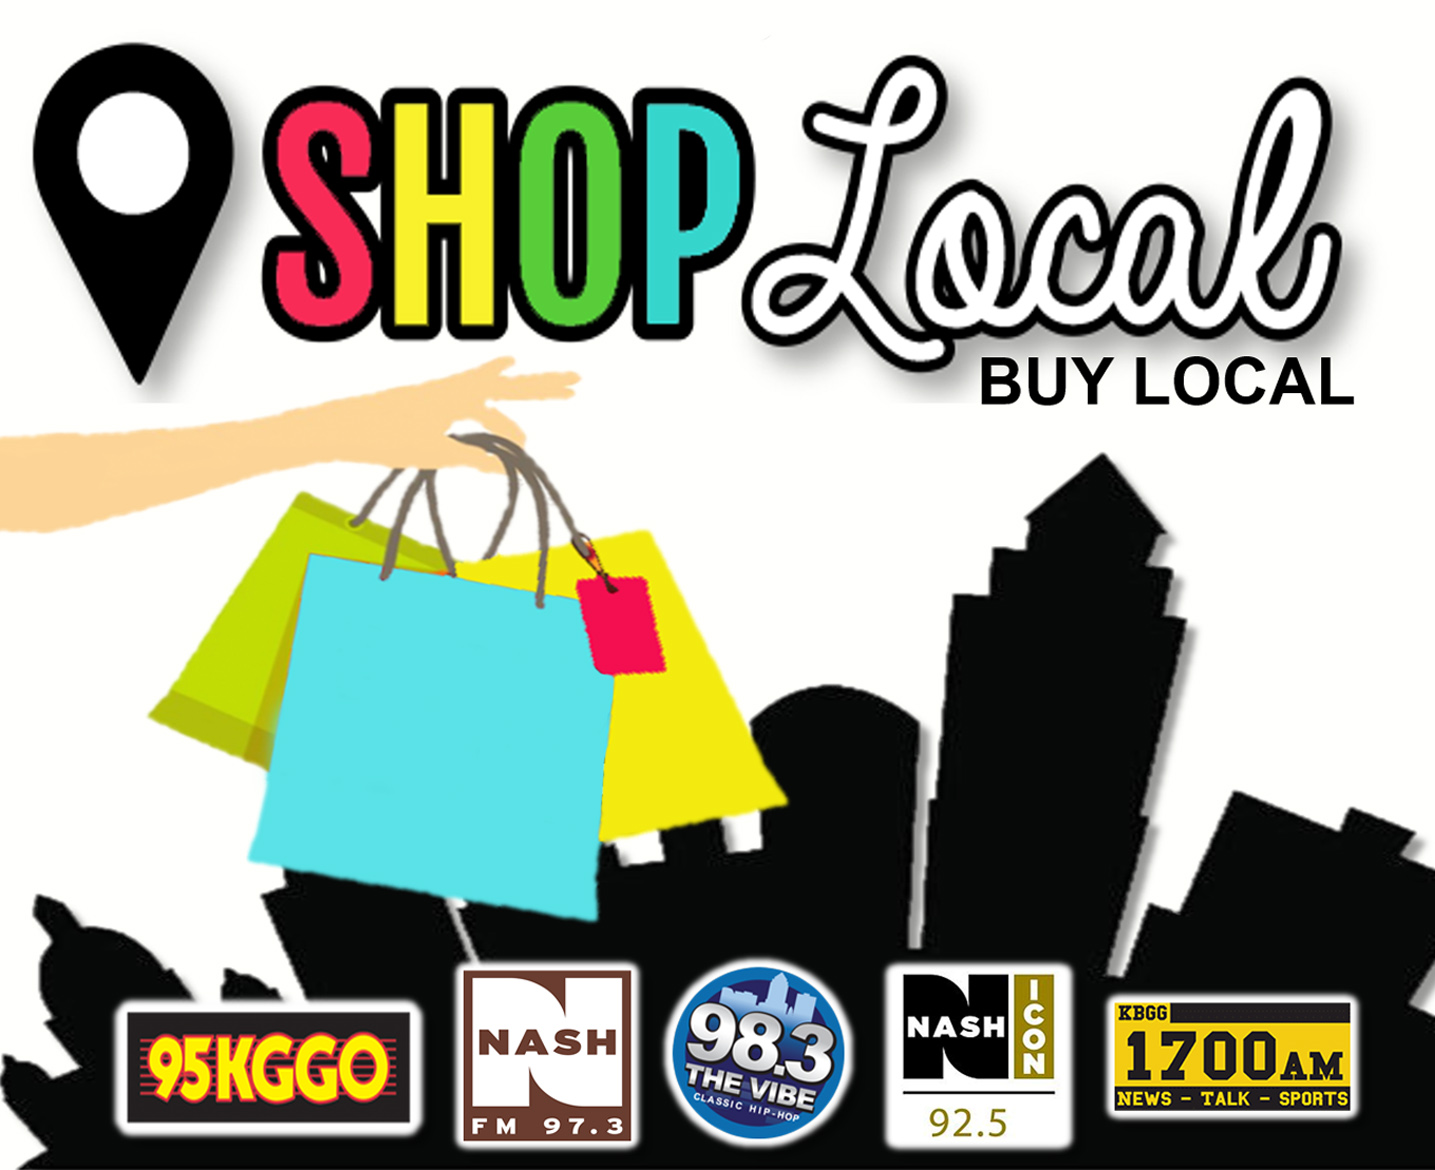 Shop Local, Buy Local